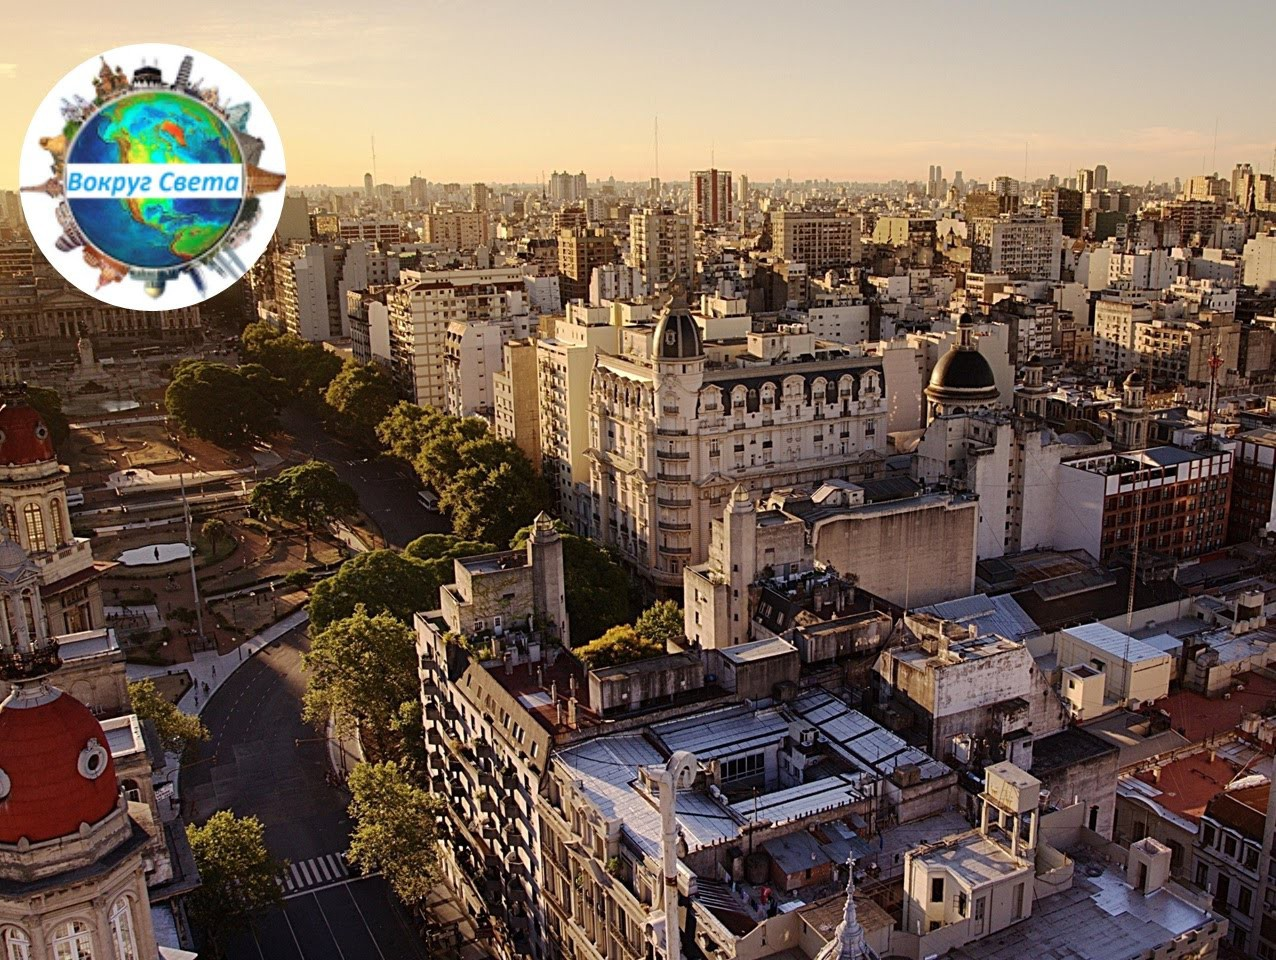 buenos aires basic information and short history